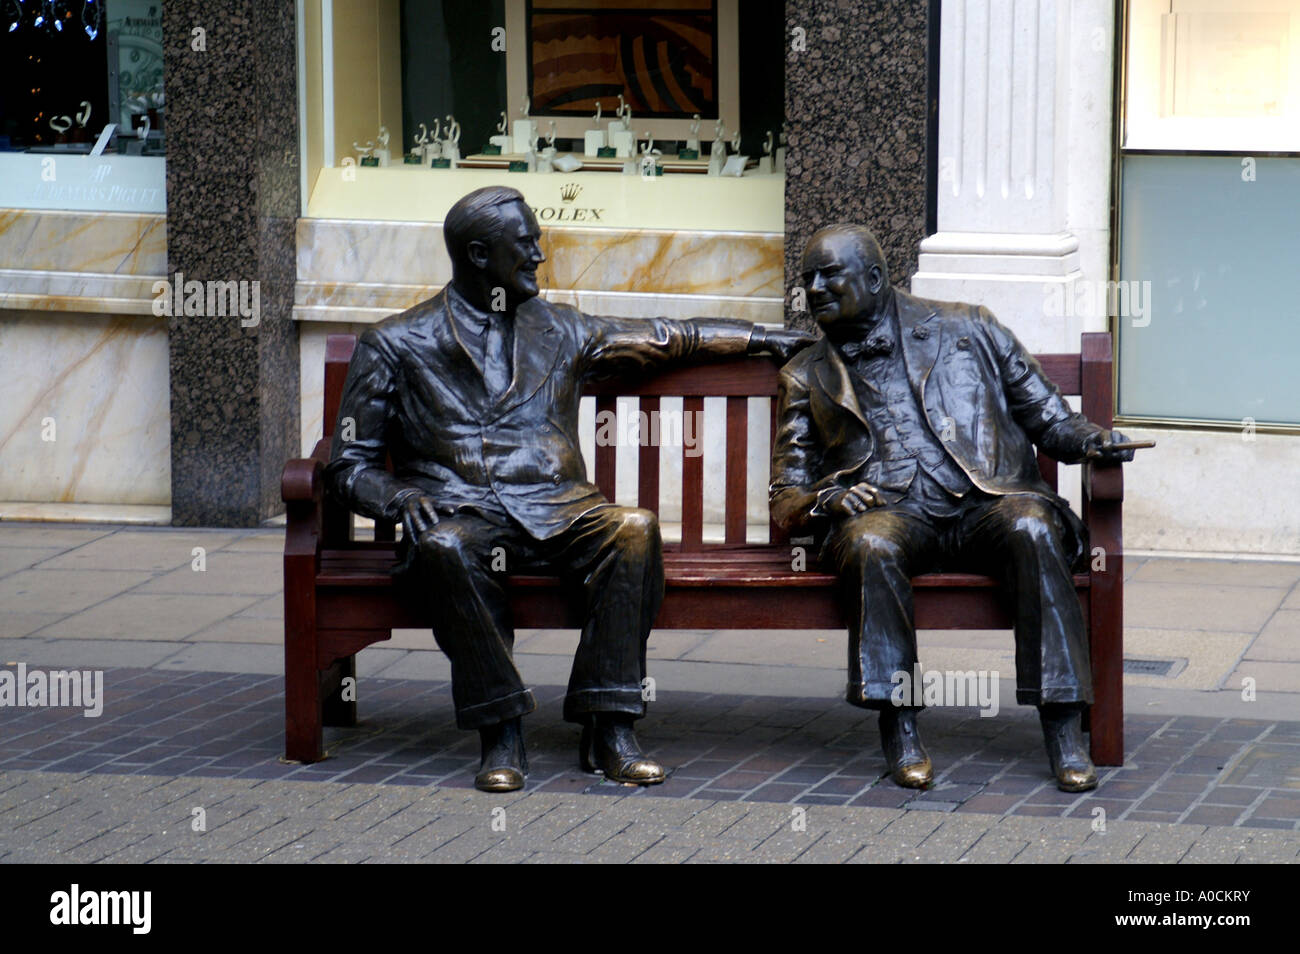 Roosevelt and Winston Churchill statues Old Bond Street London - Stock Image